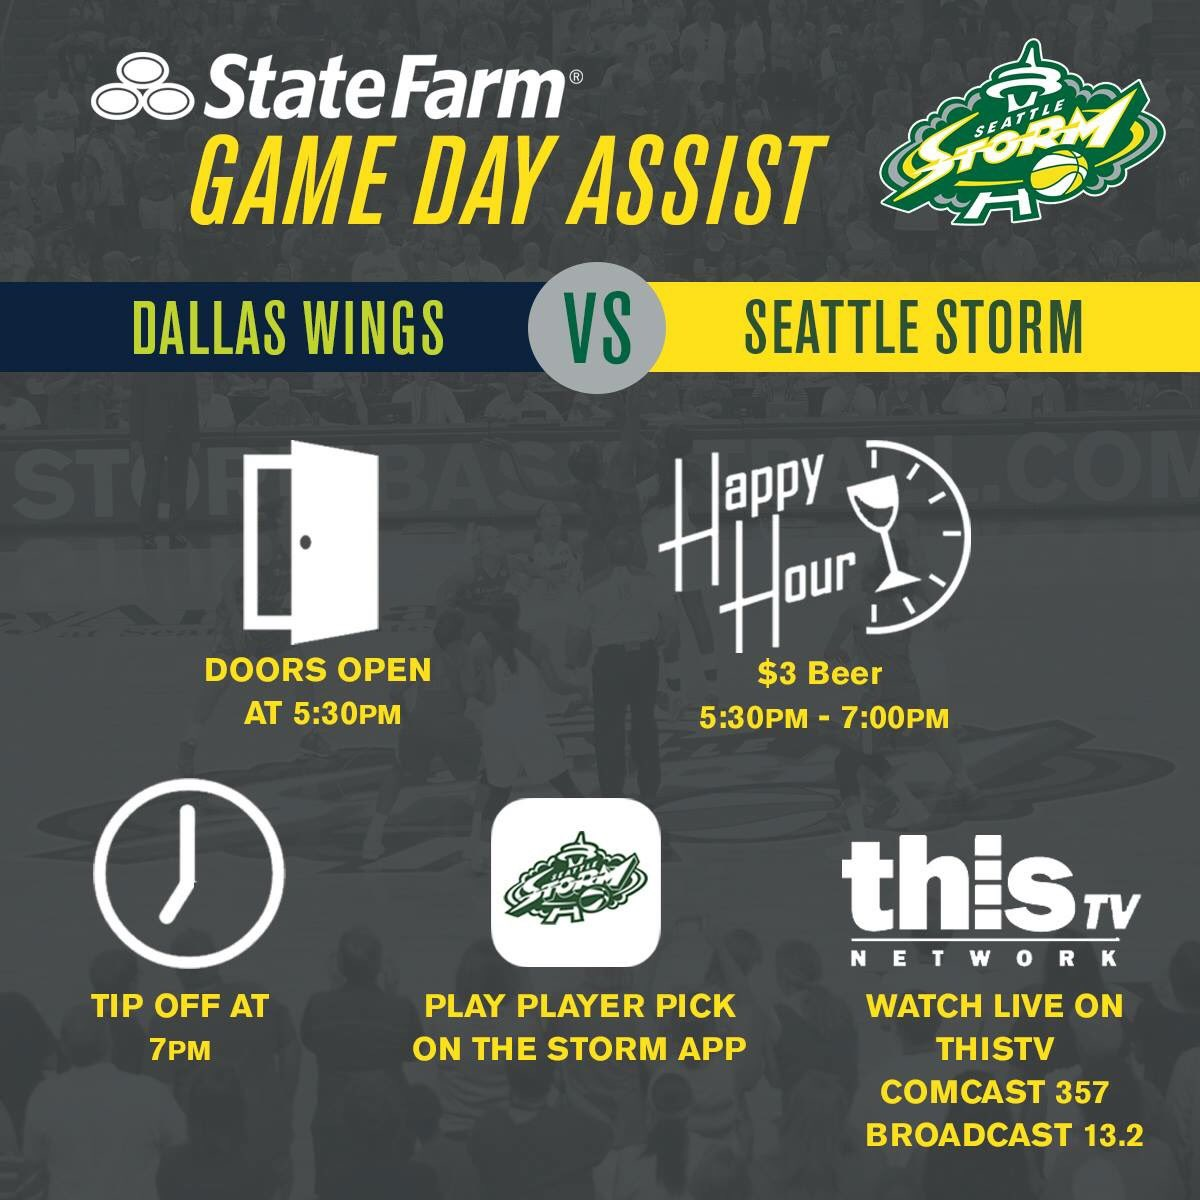 "seattle storm on twitter: "".@statefarm game day assist 